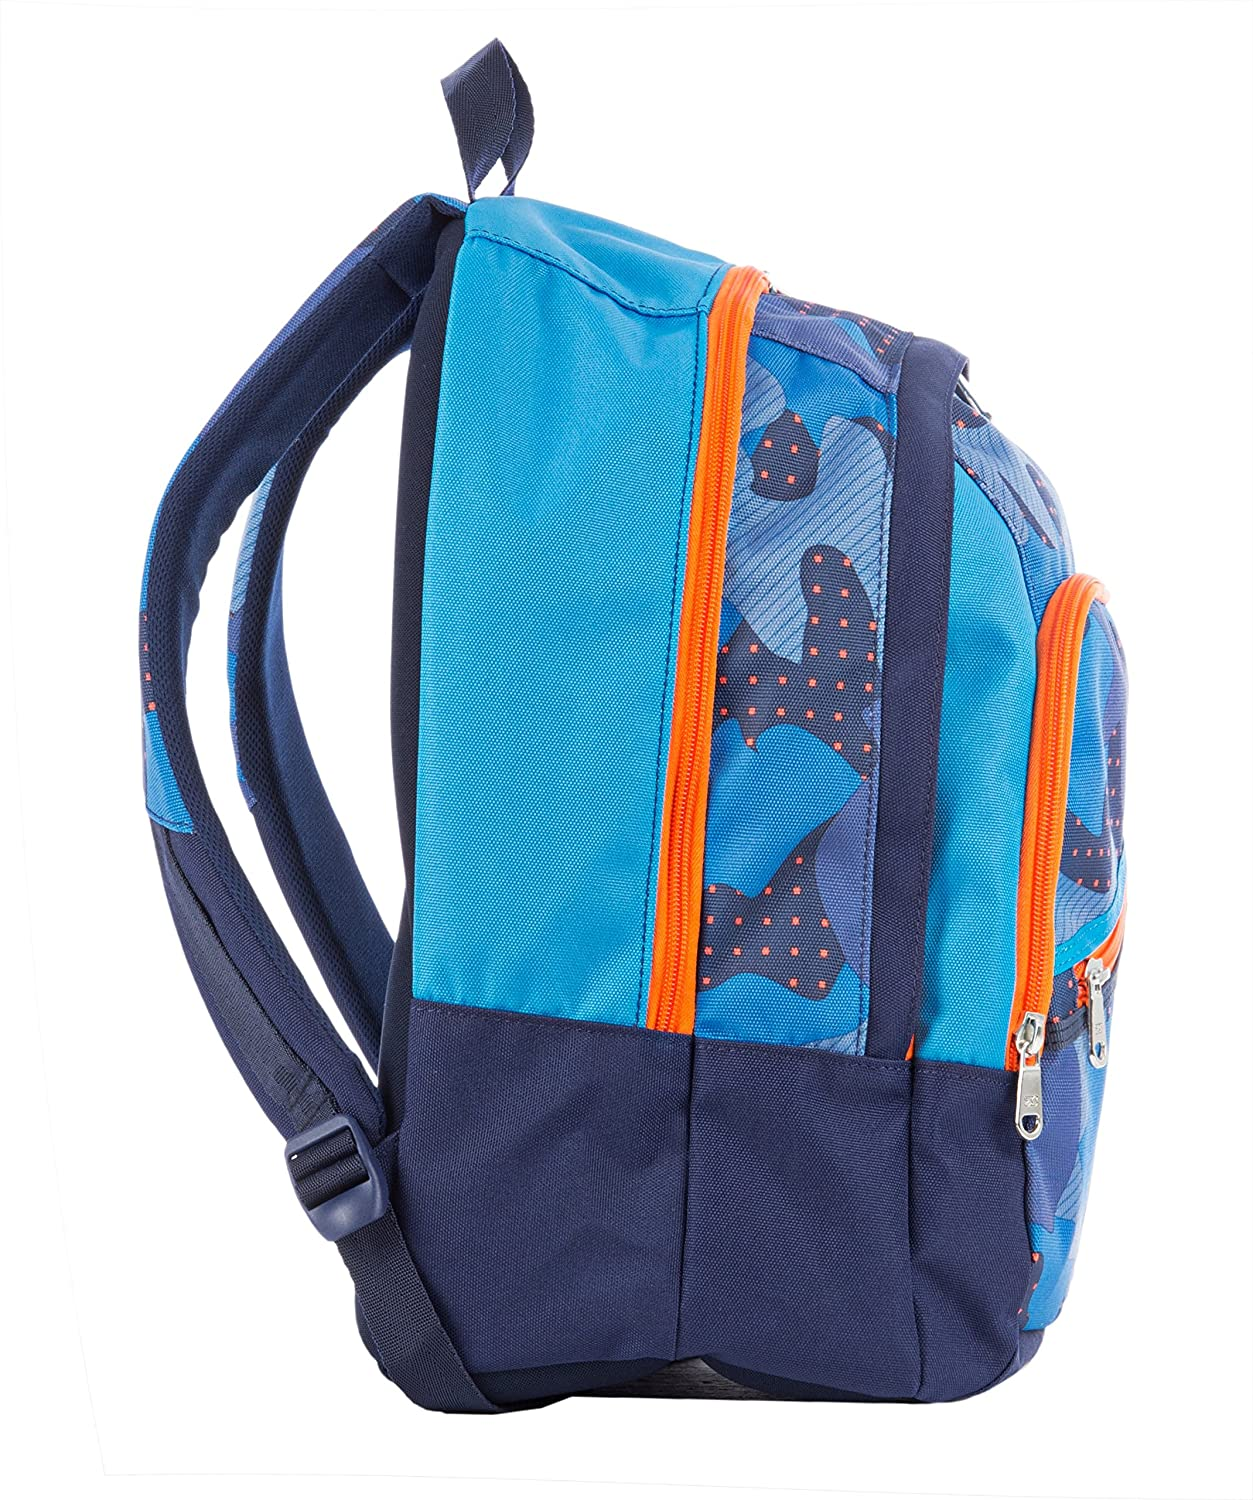 SEVEN FIT MIMETICAL Trolley Cart Camouflage Blue 28 LT School /& Leisure Backpack